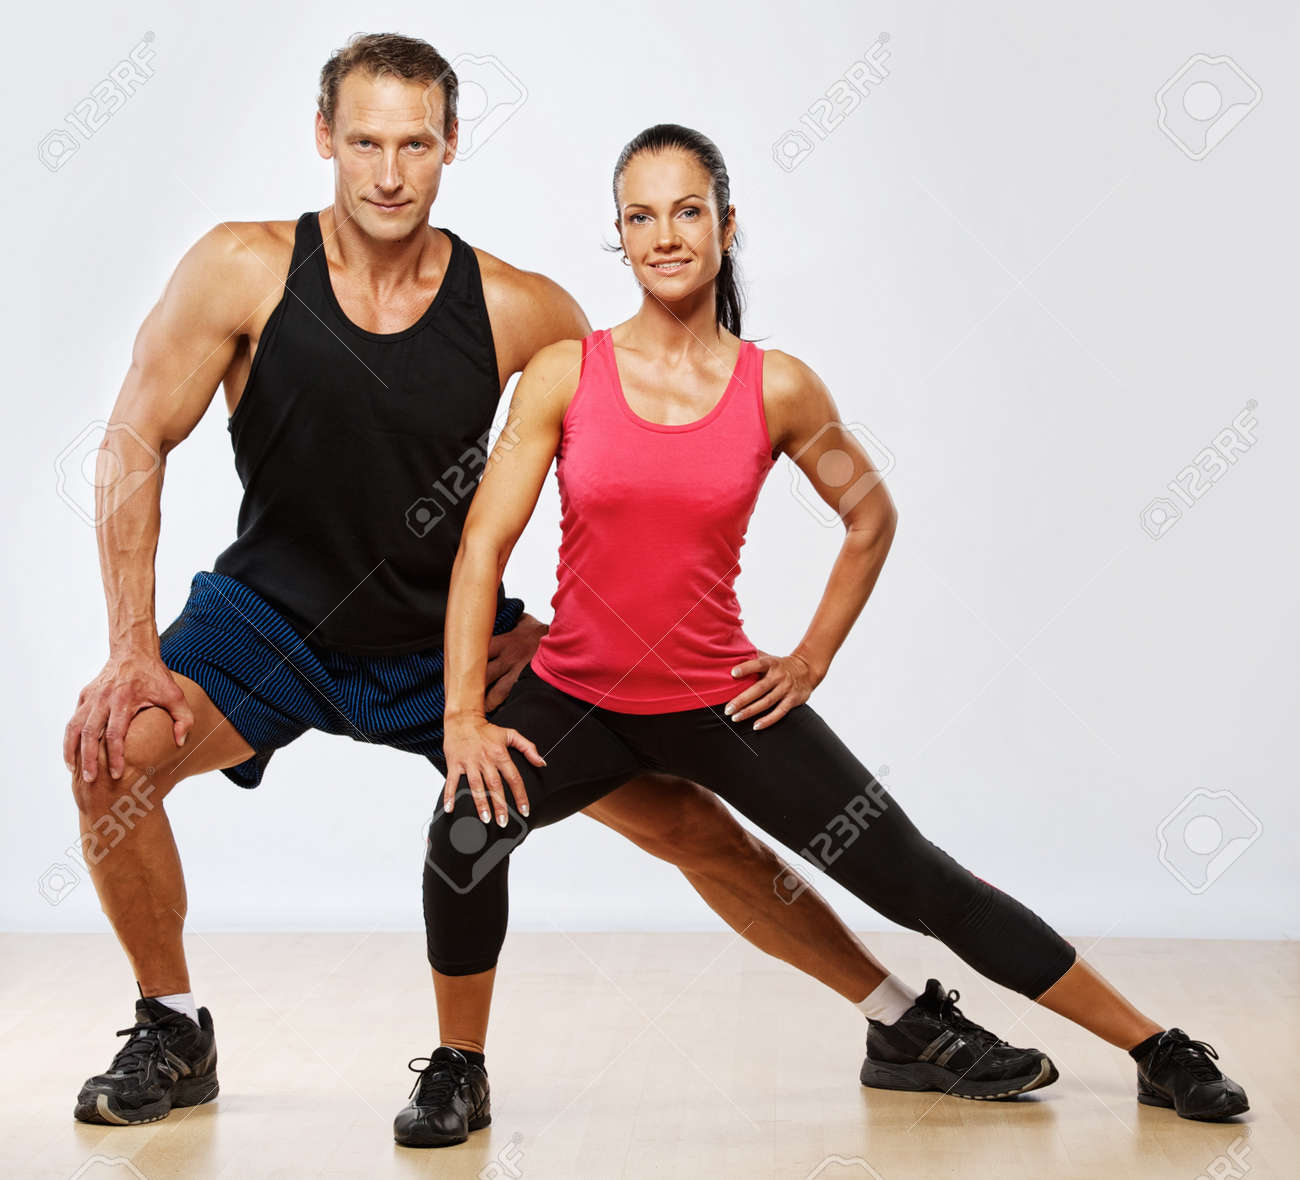 Athletic man and woman doing fitness exercise Stock Photo - 10479370